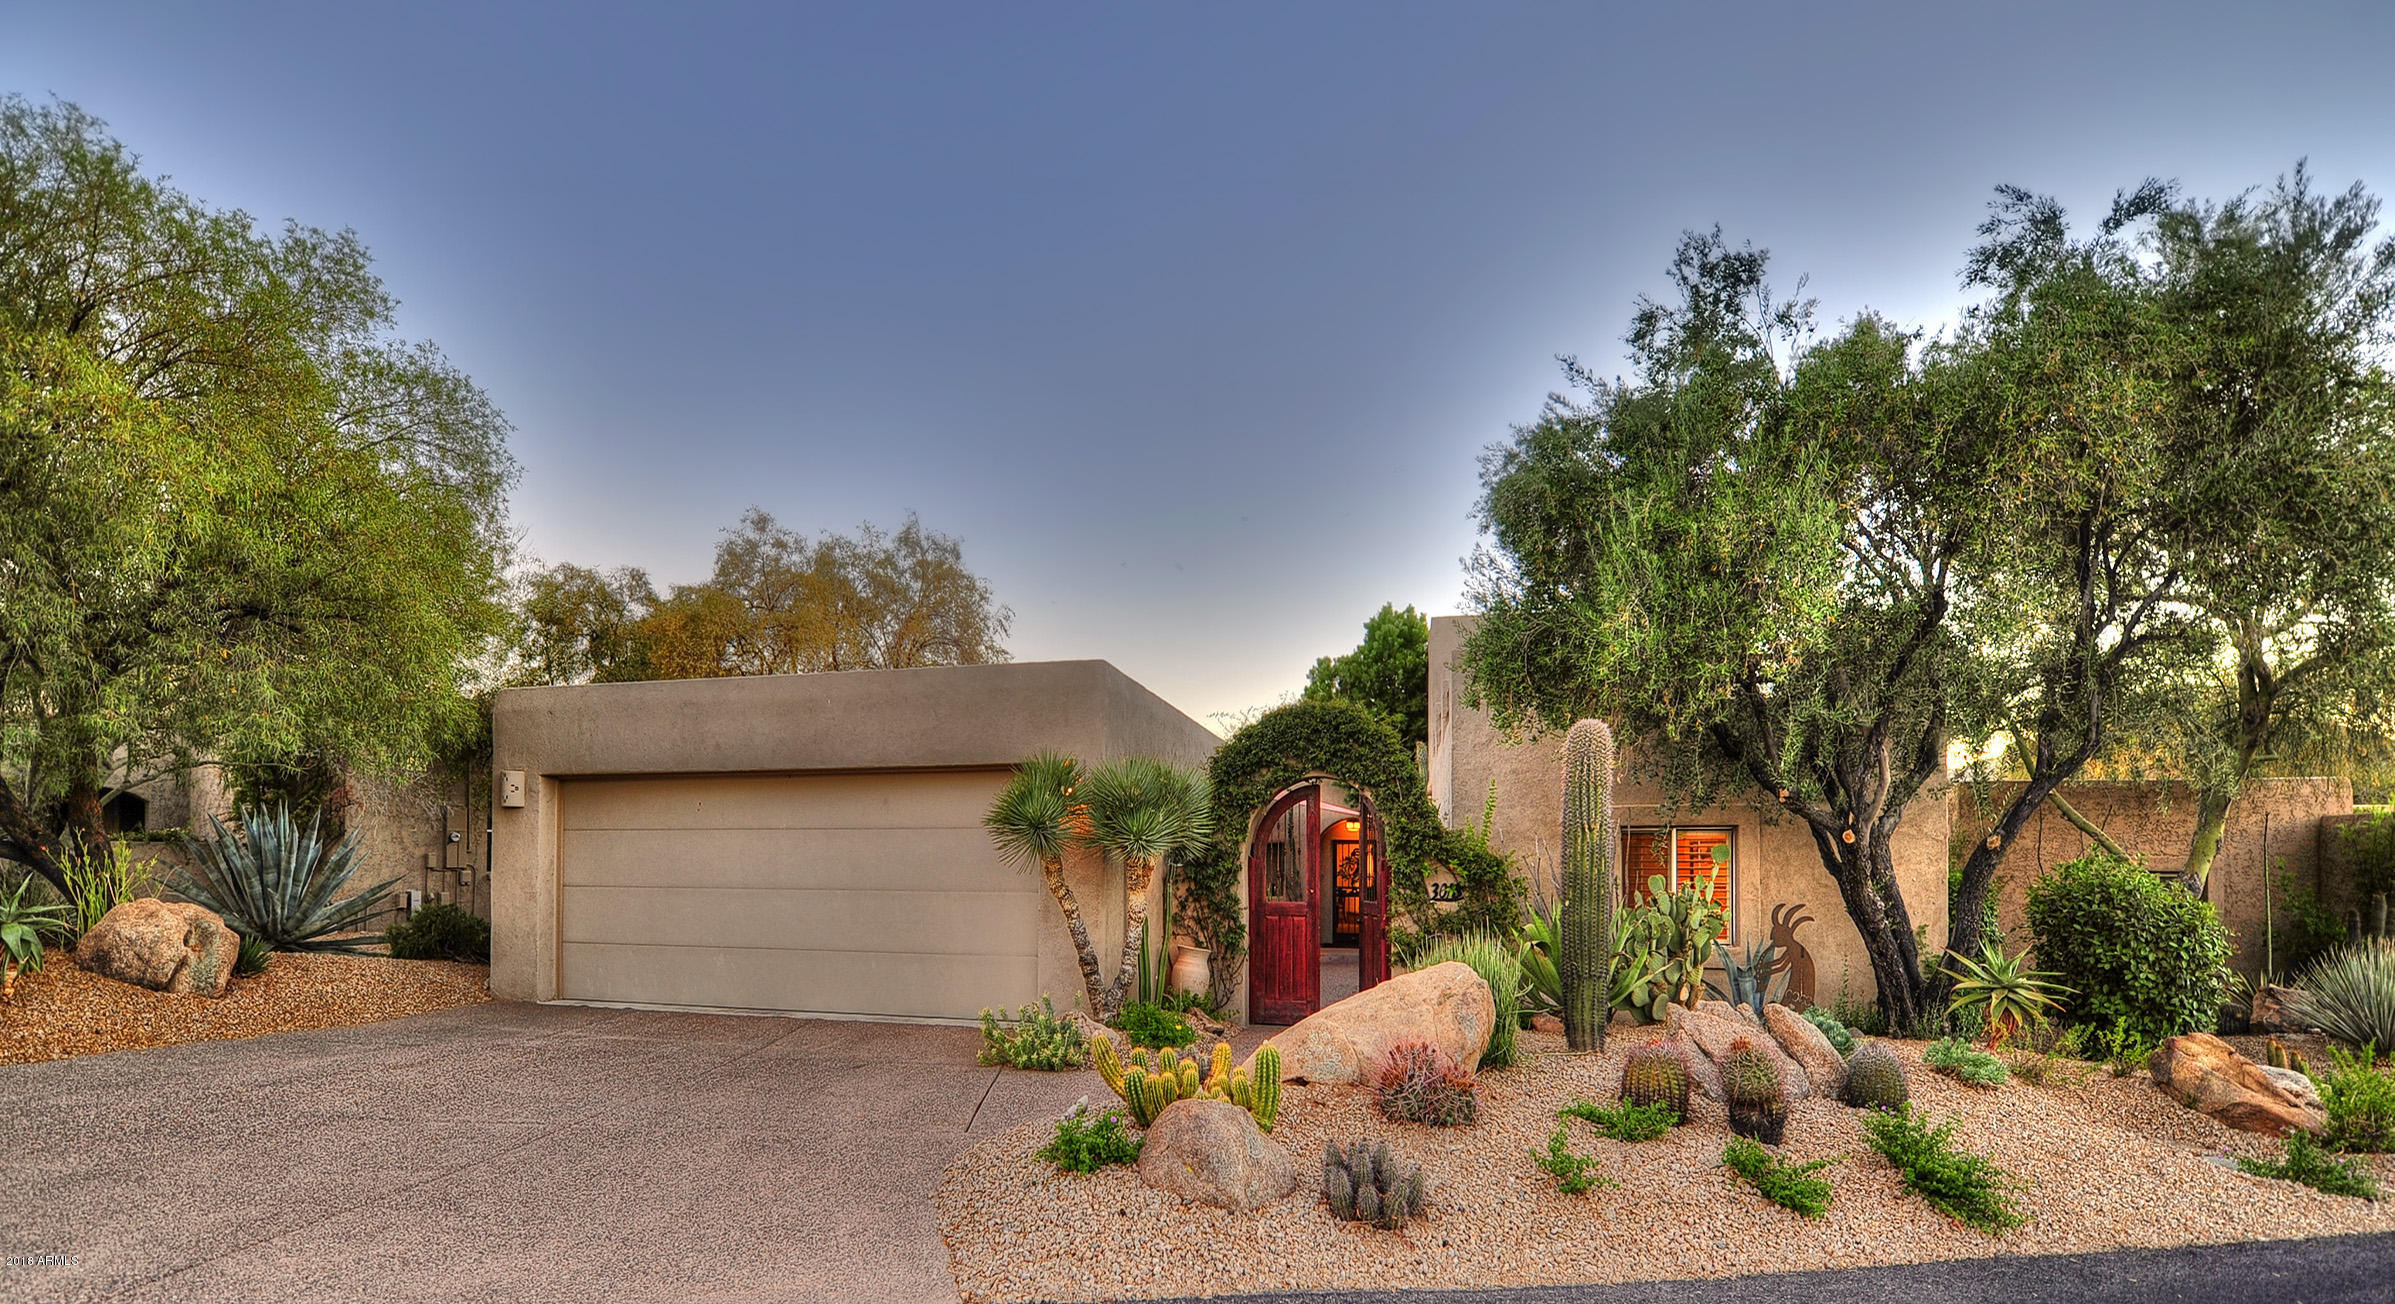 3018 E Ironwood Circle, Carefree AZ 85377 - Photo 2